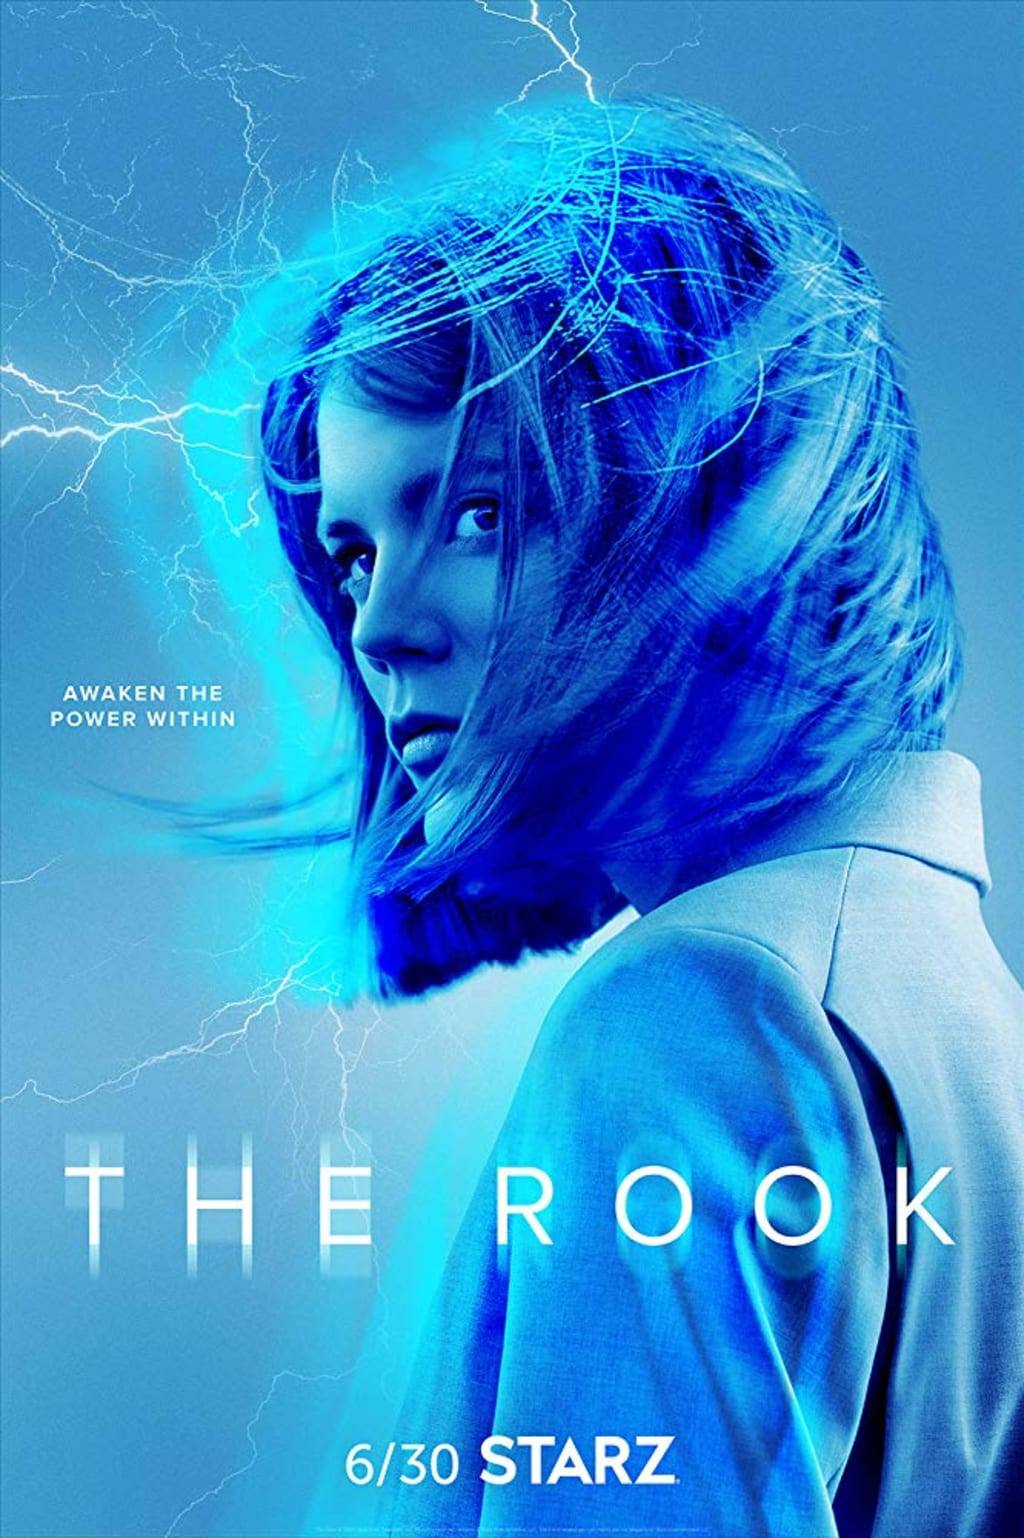 Review of 'The Rook' 1.4